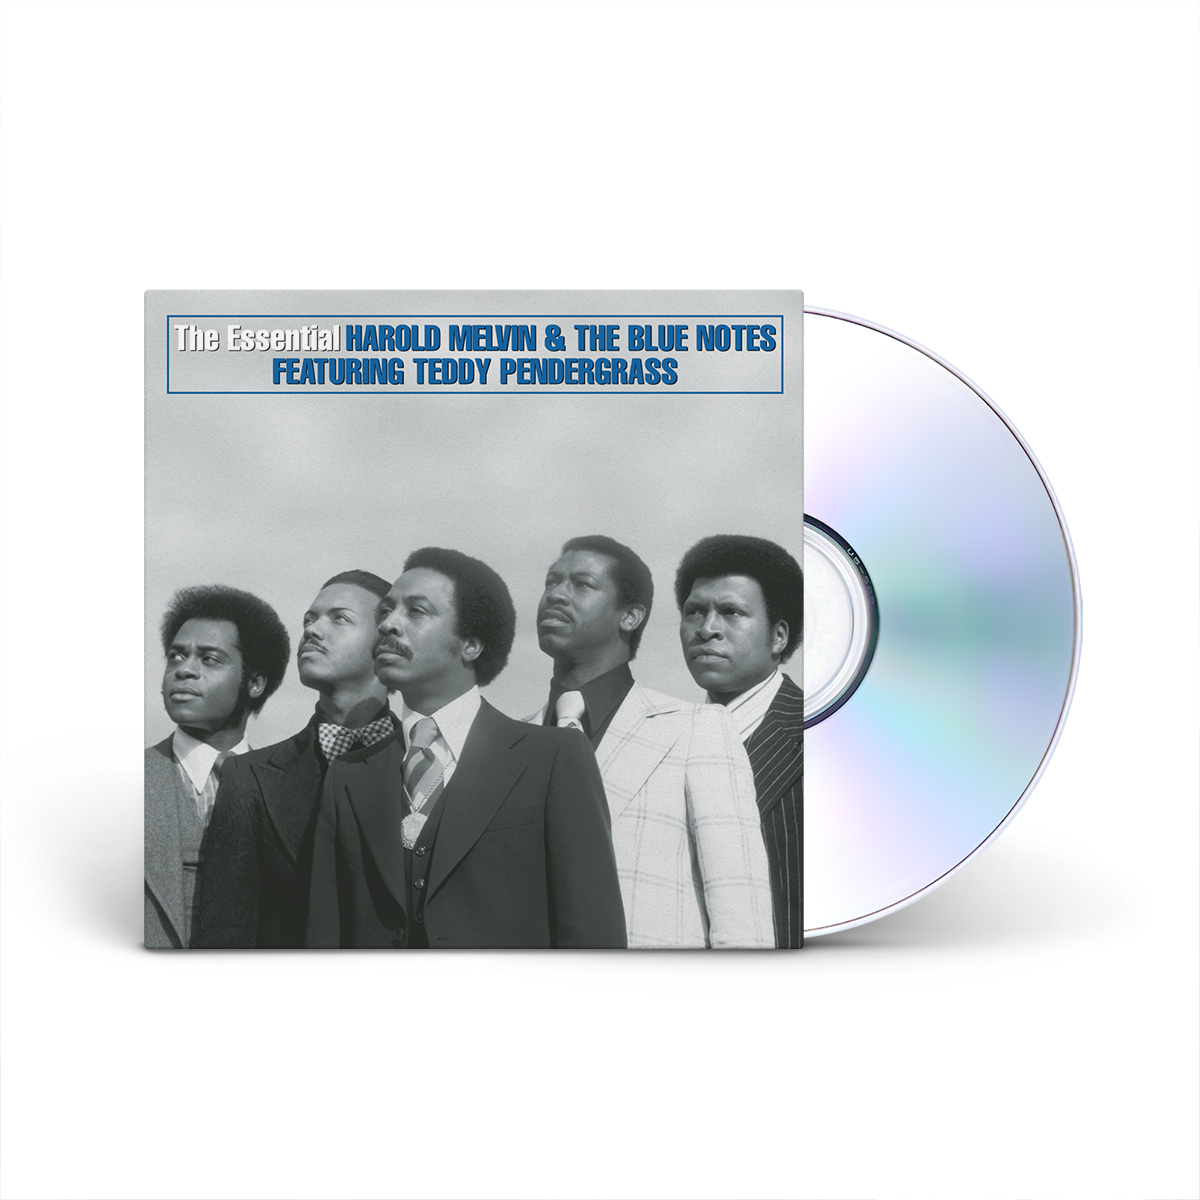 The Essential Harold Melvin & The Blue Notes CD